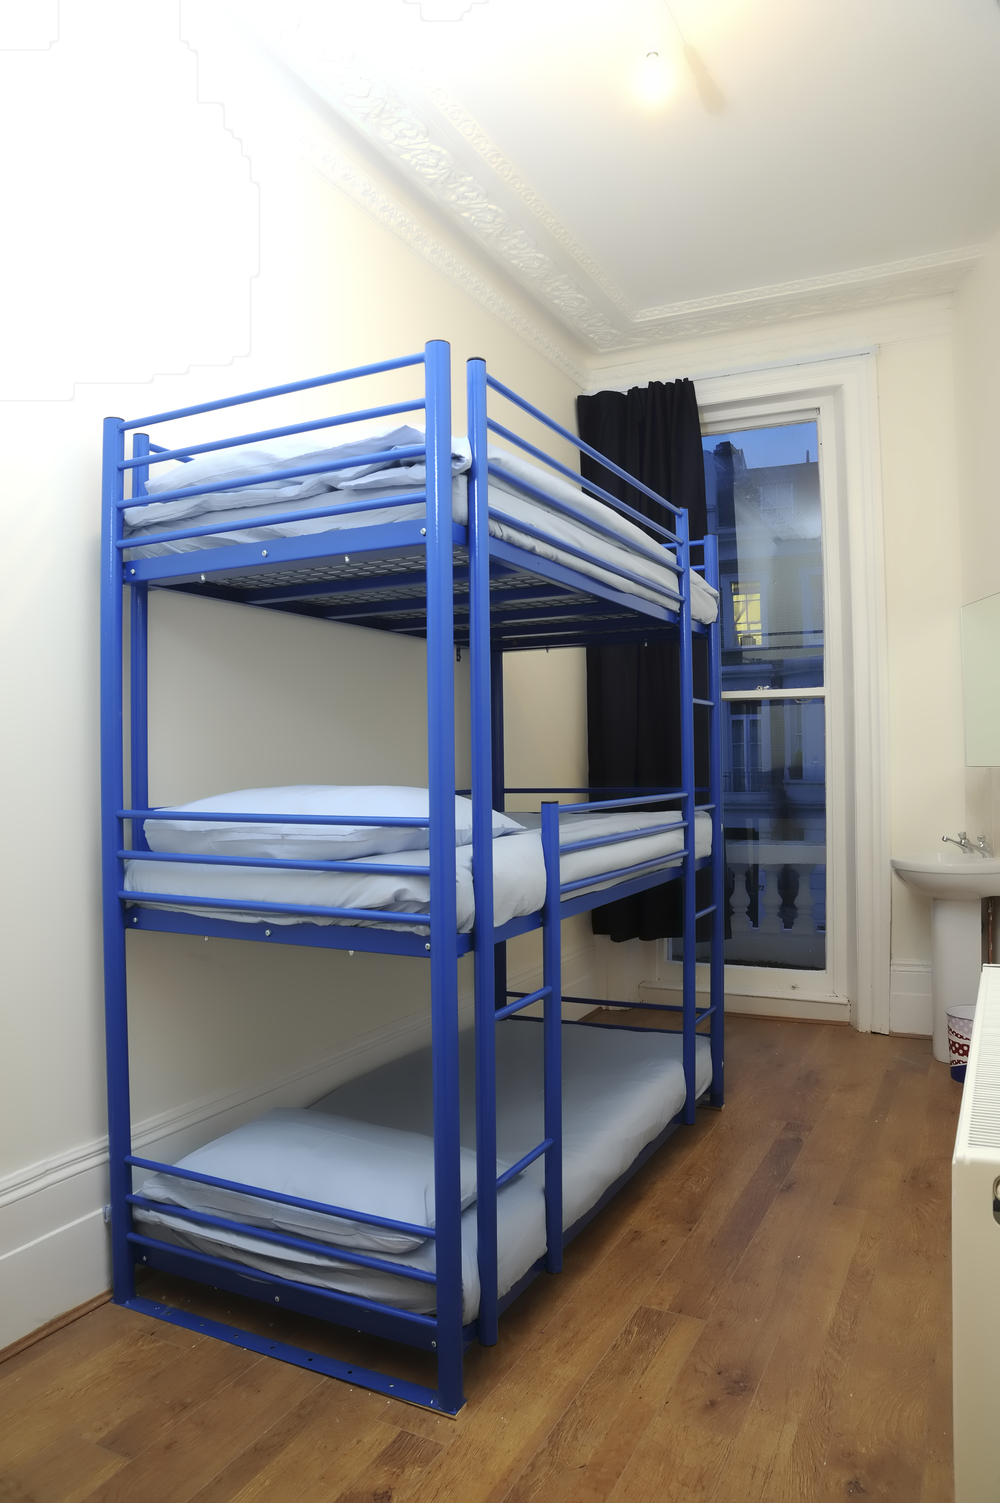 Saint James Backpackers Hostel London